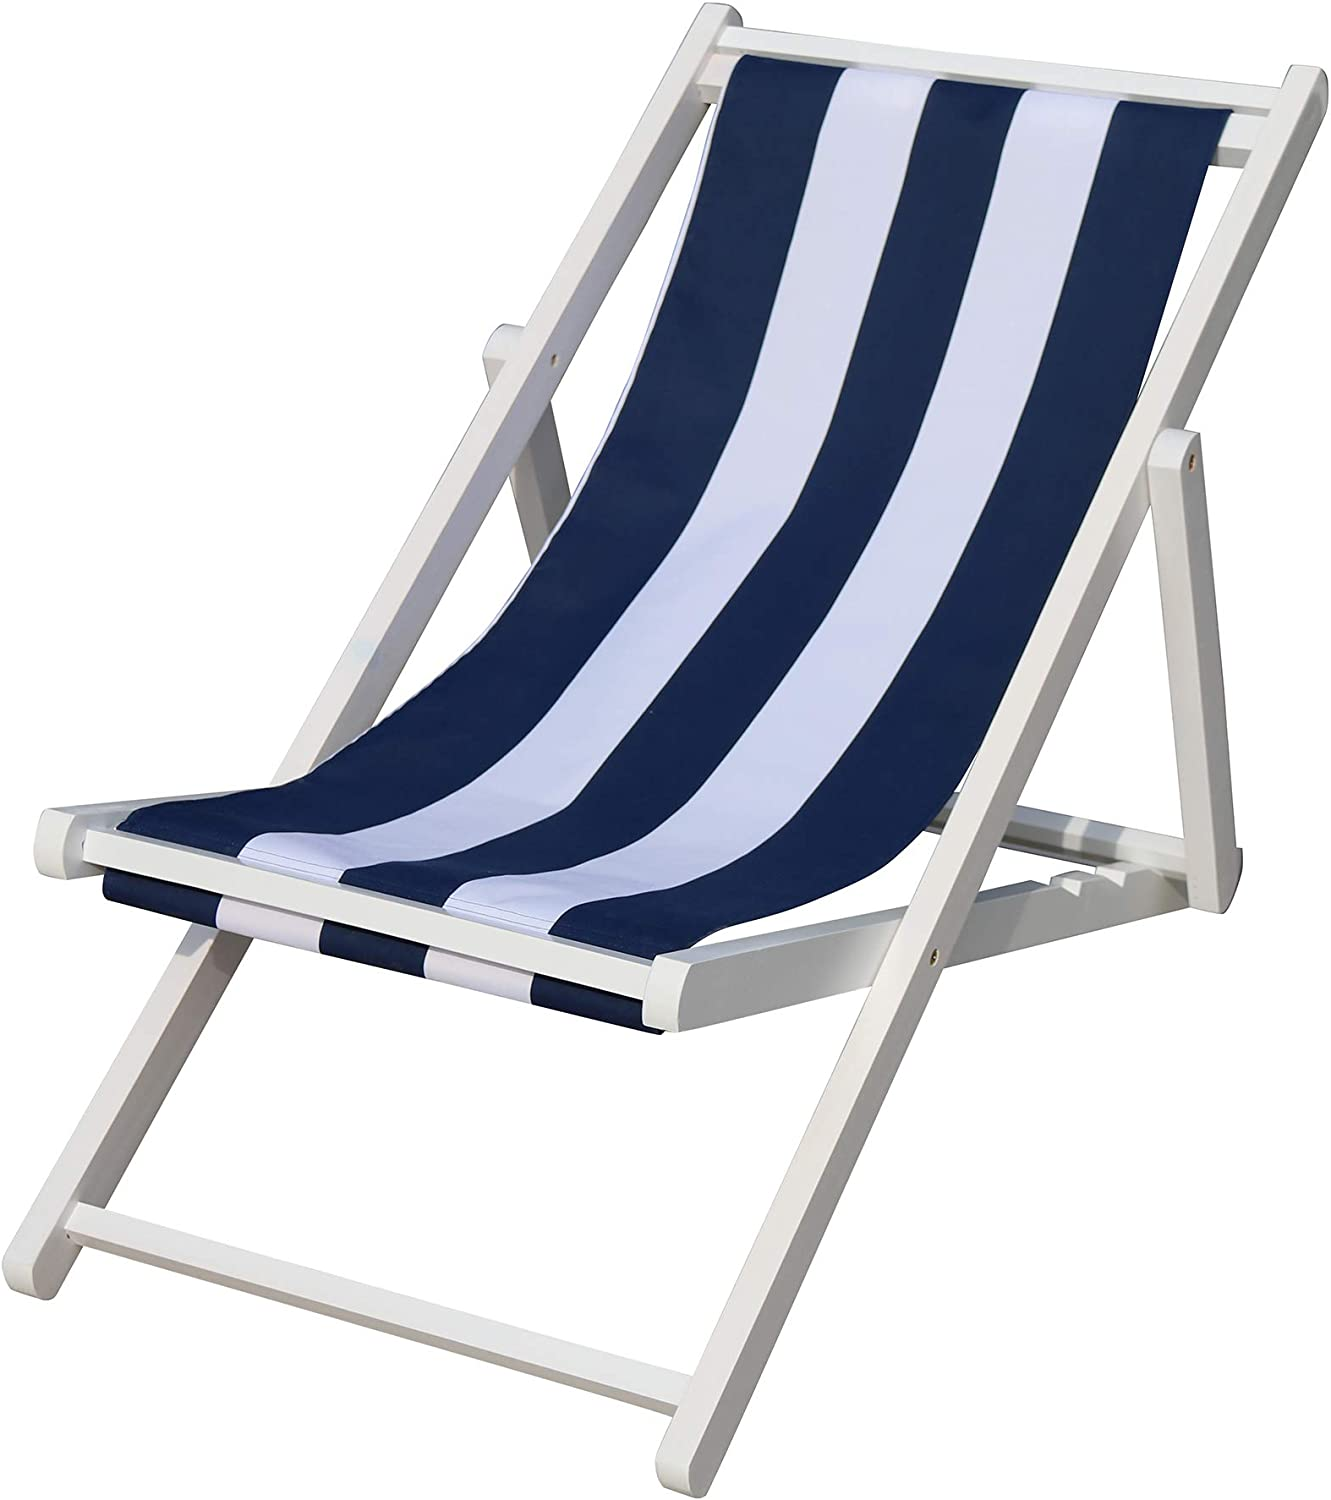 Broad Blue Attention brand Stripe populus Wood Sling Chair Indoor Outdoor Poolsi Popular brand in the world